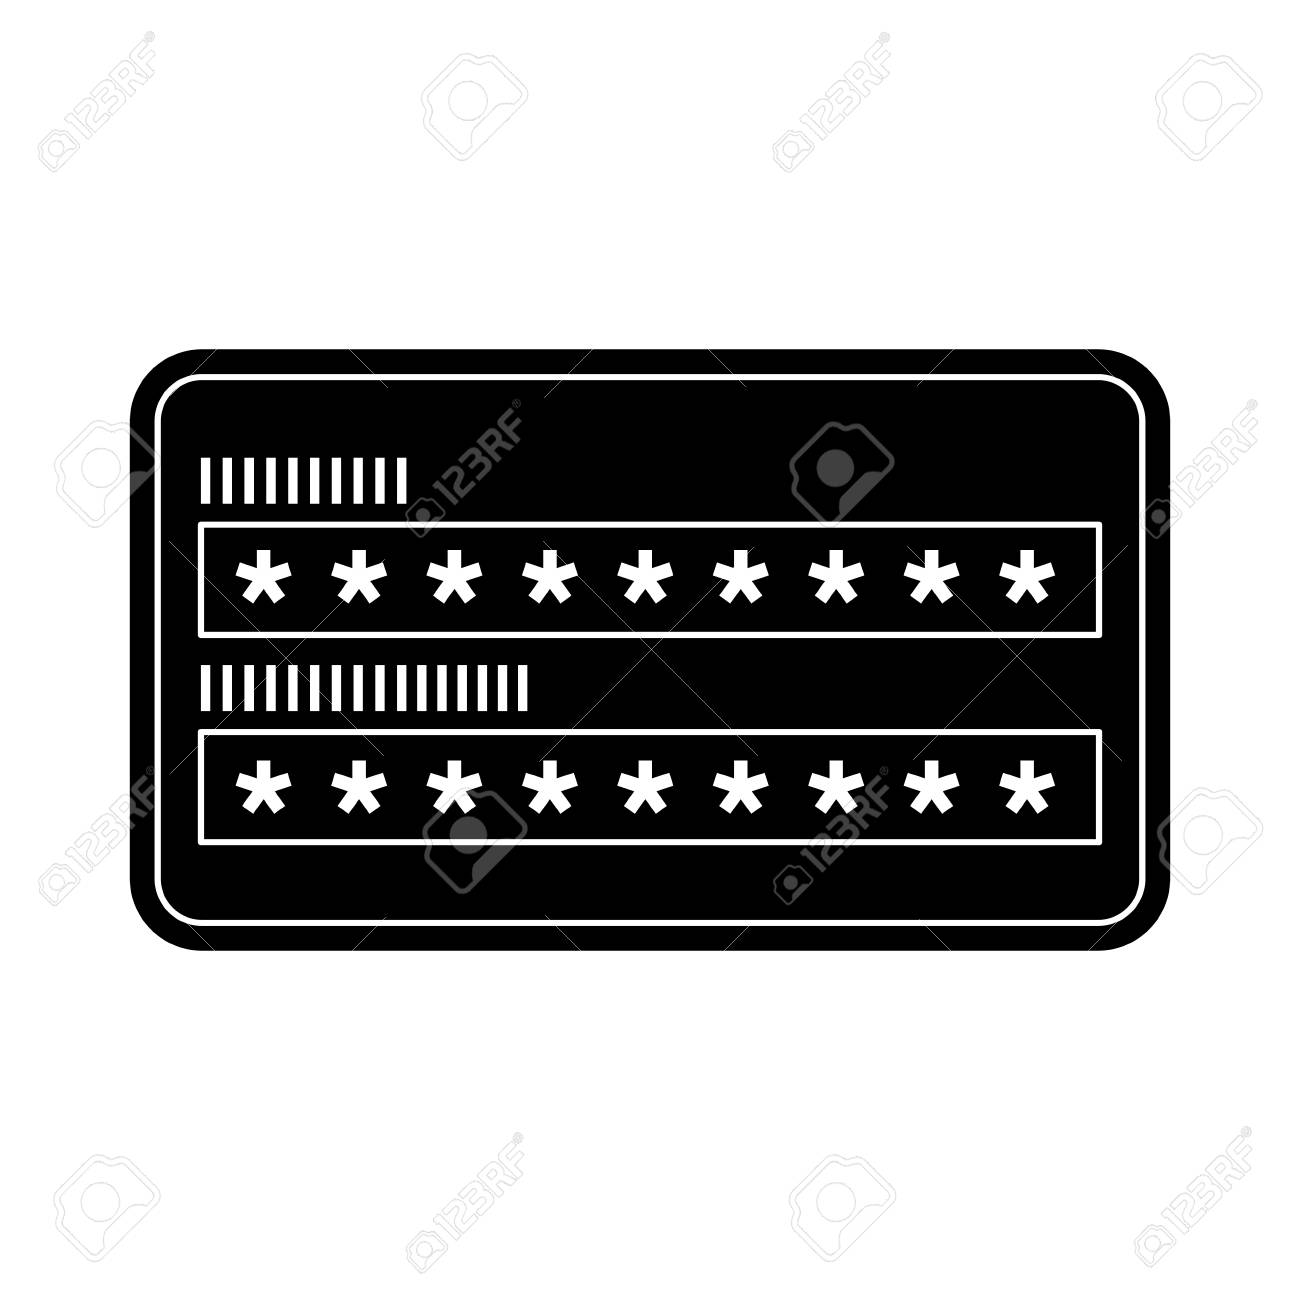 123Rf Password security access password login protection vector illustration